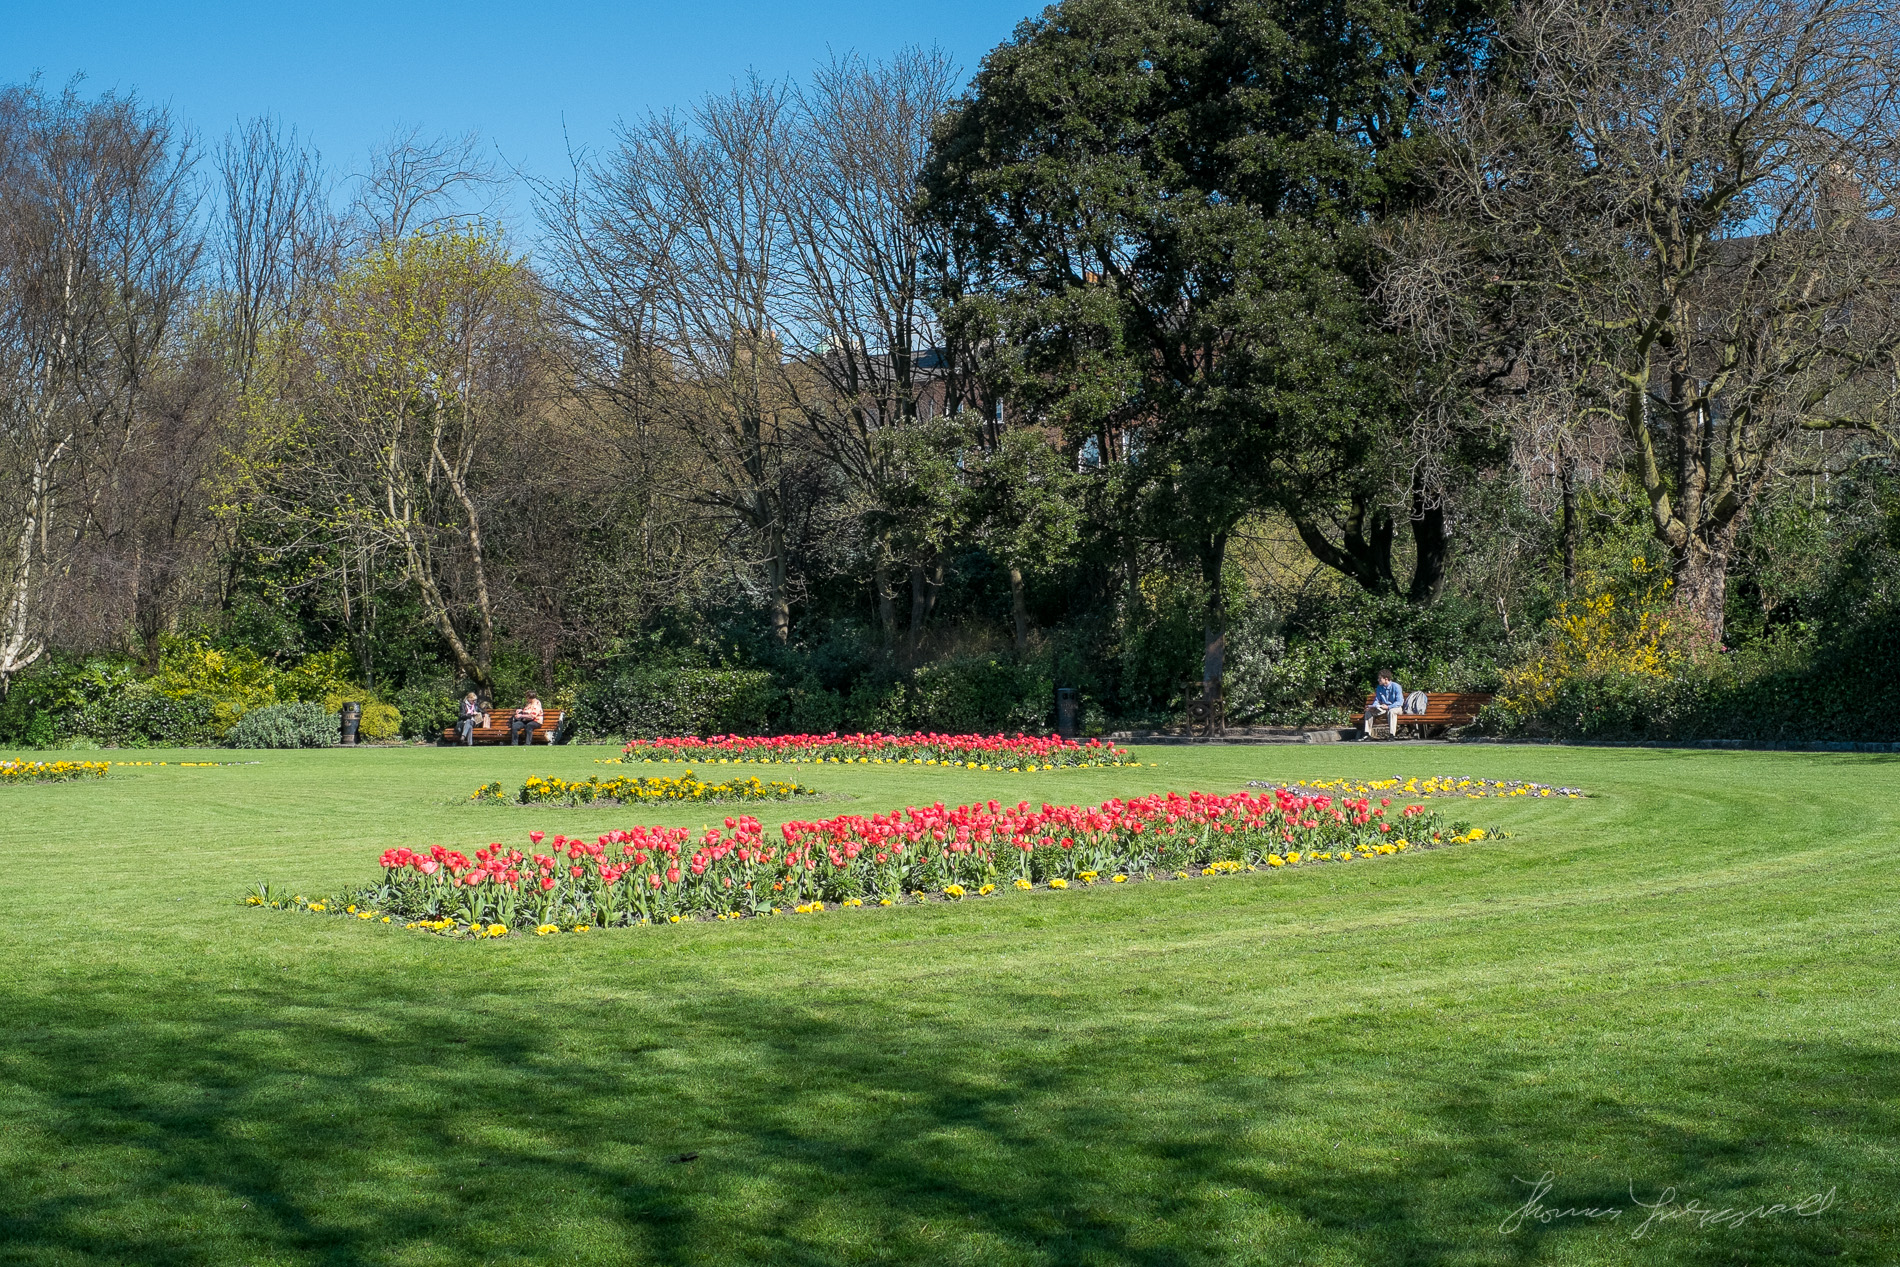 Flowers in Merrion Square